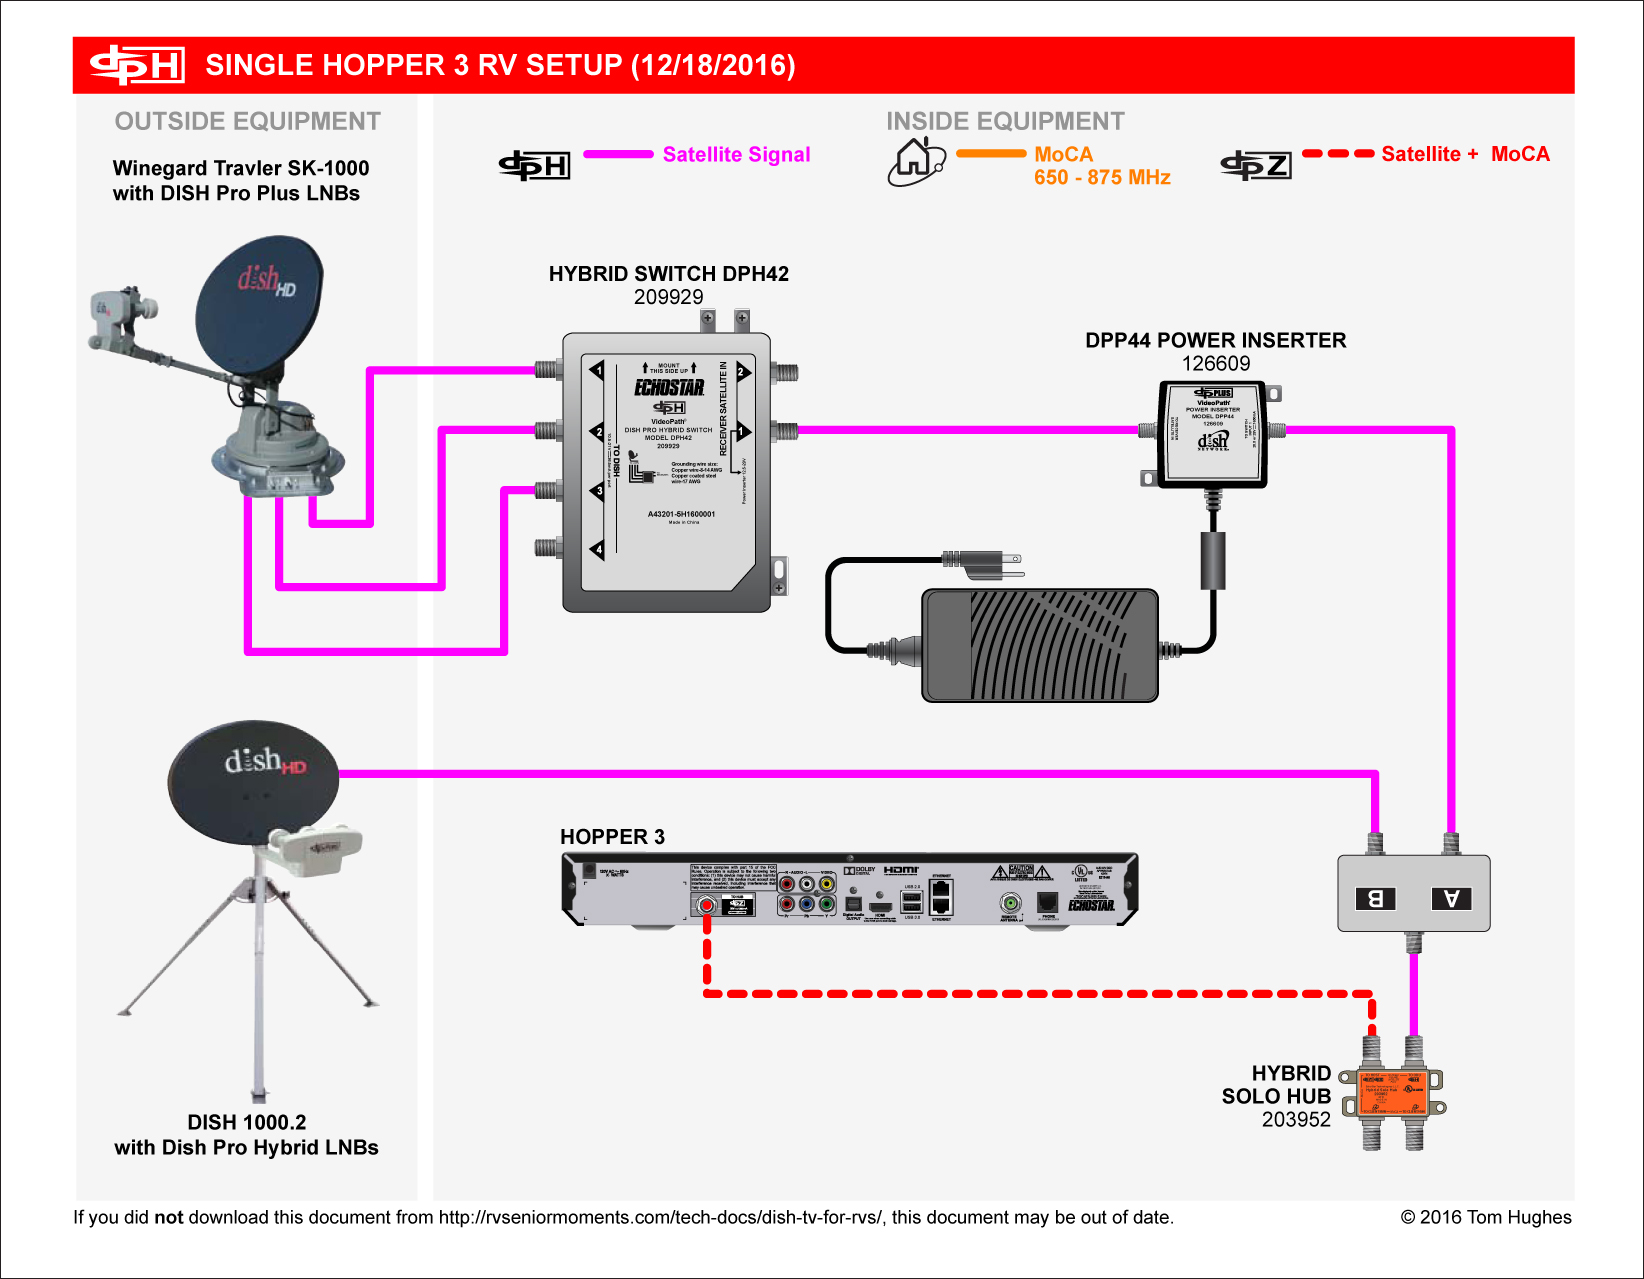 dish network multiswitch diagram 2008 chevy malibu dpp44 switch wiring 27 images